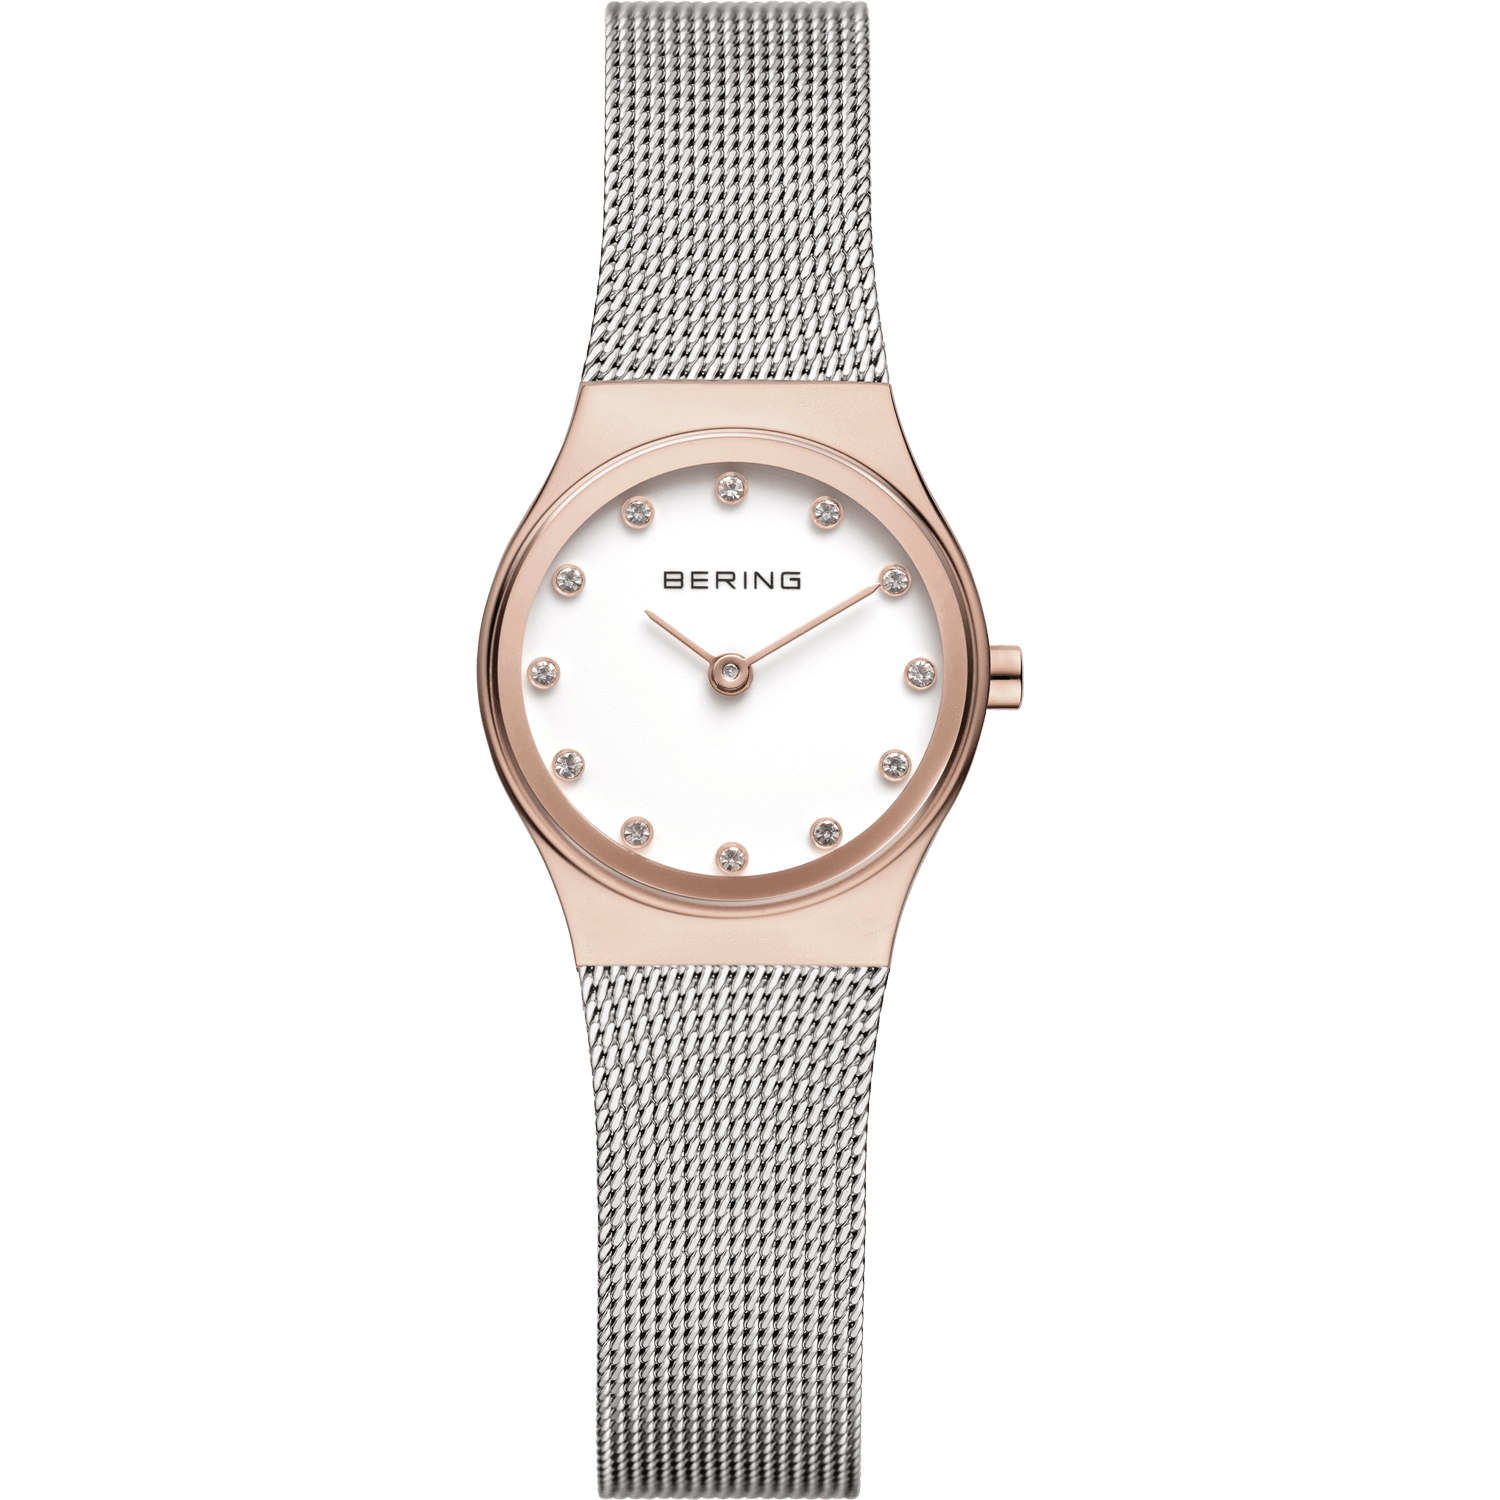 Bering Classic 12924-064 Silver 24 mm Women's Watch - COCOMI